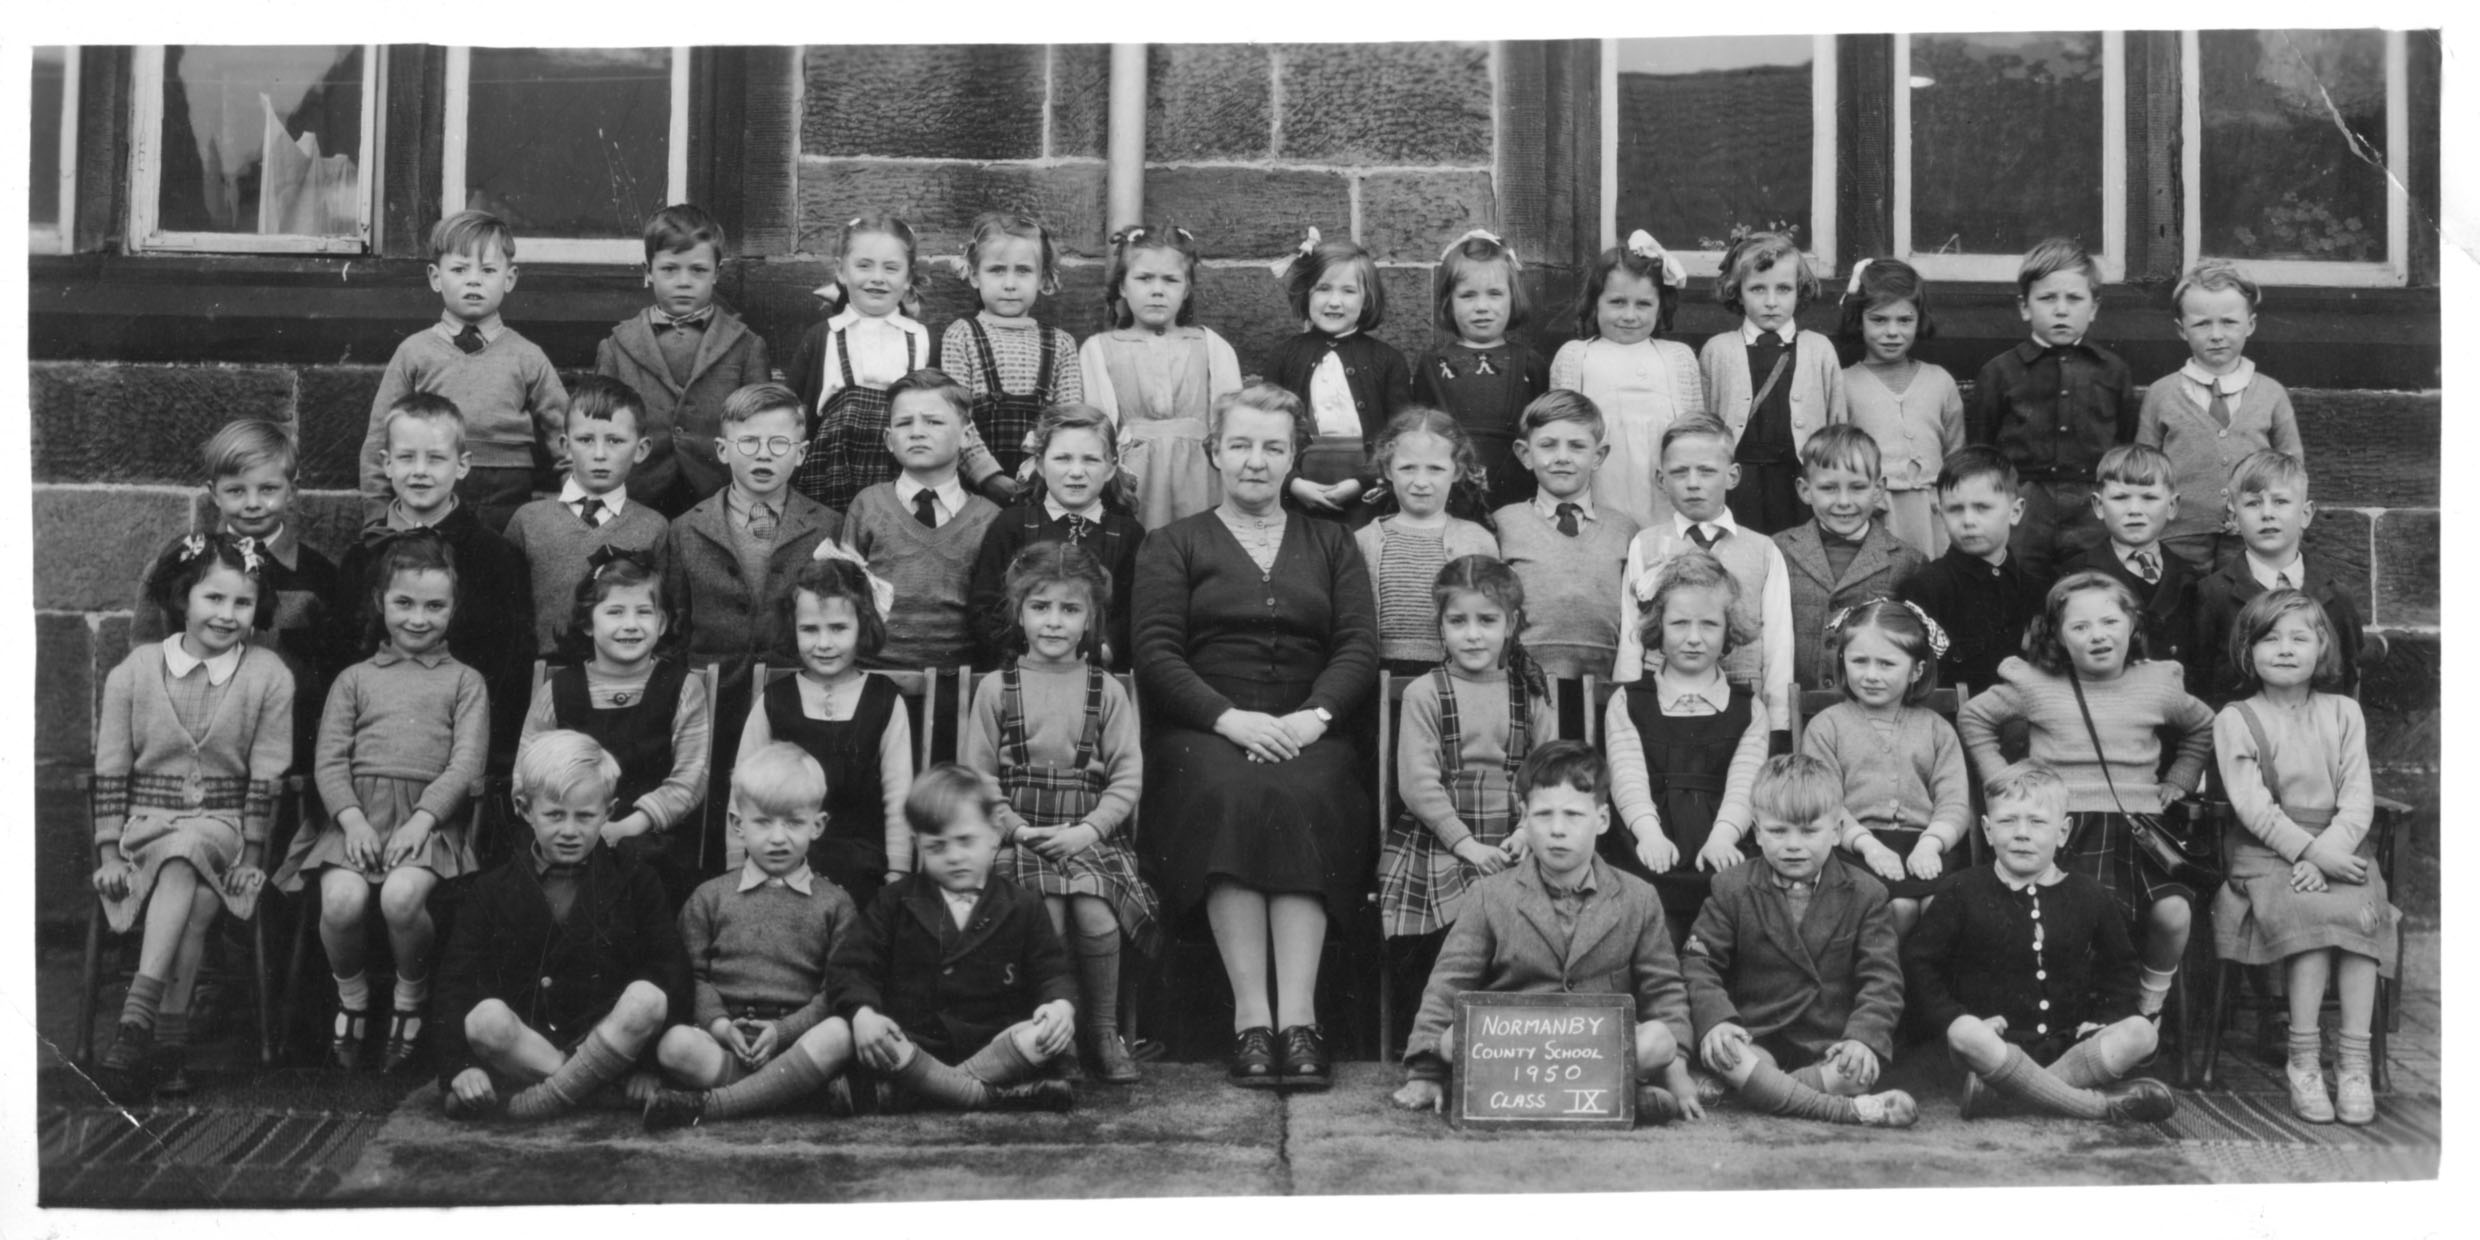 Normanby School Photo Class - 1950-class9